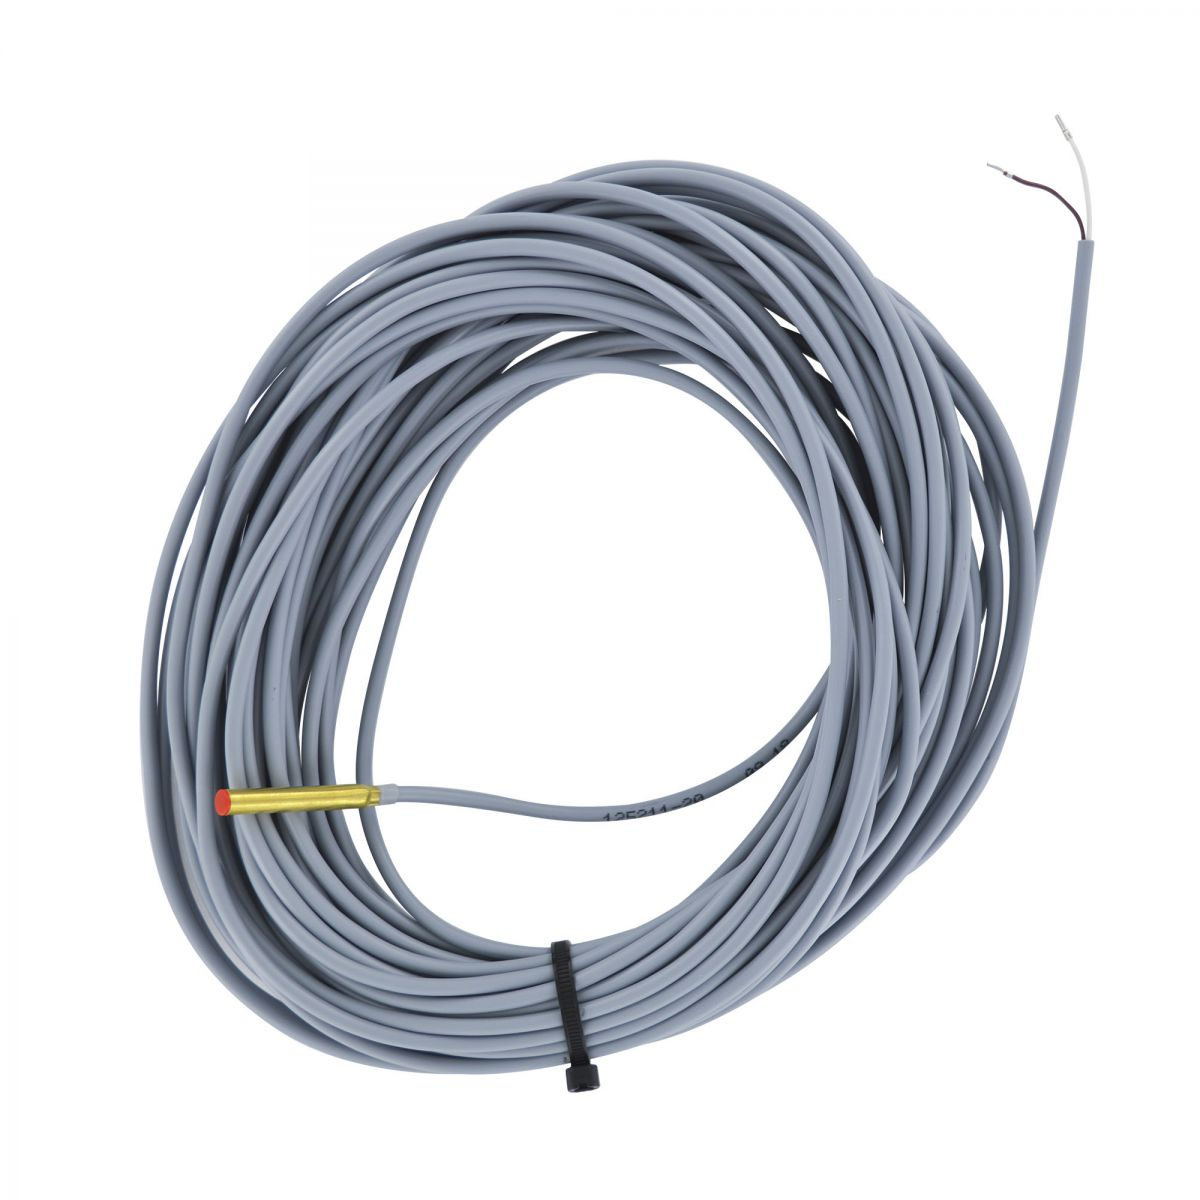 reedsensor with 20 m cable